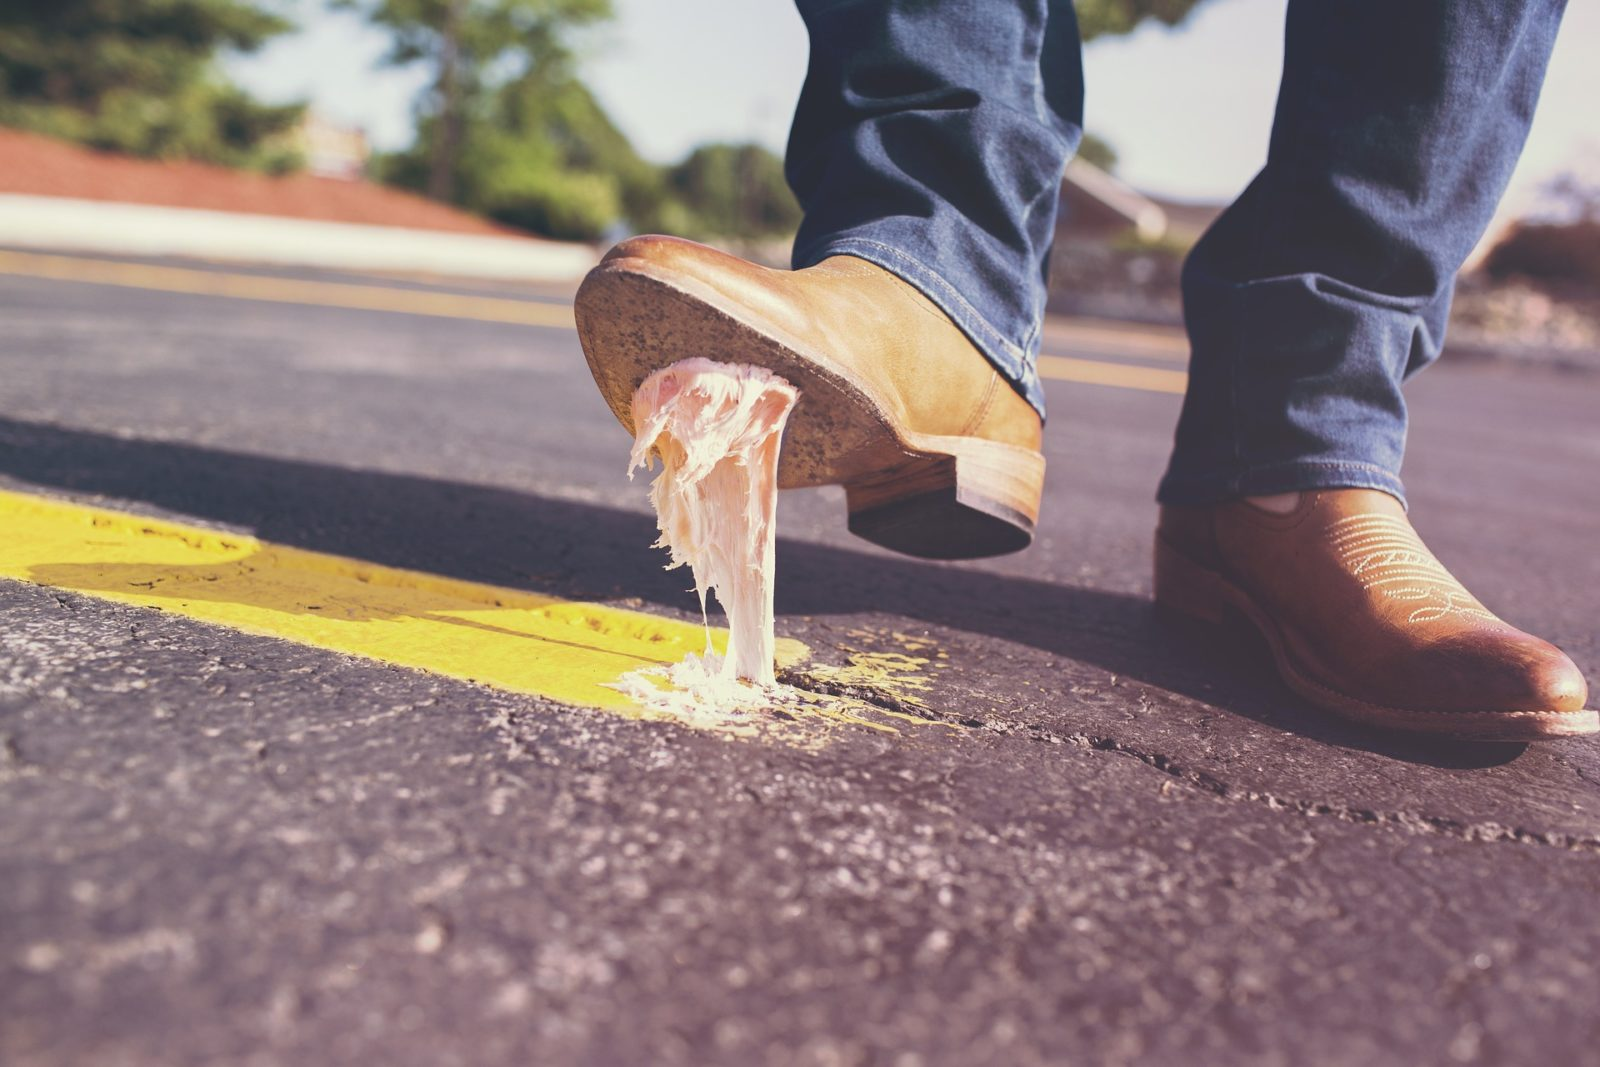 Are you stuck the weeds? 3 Ways business owners can get unstuck